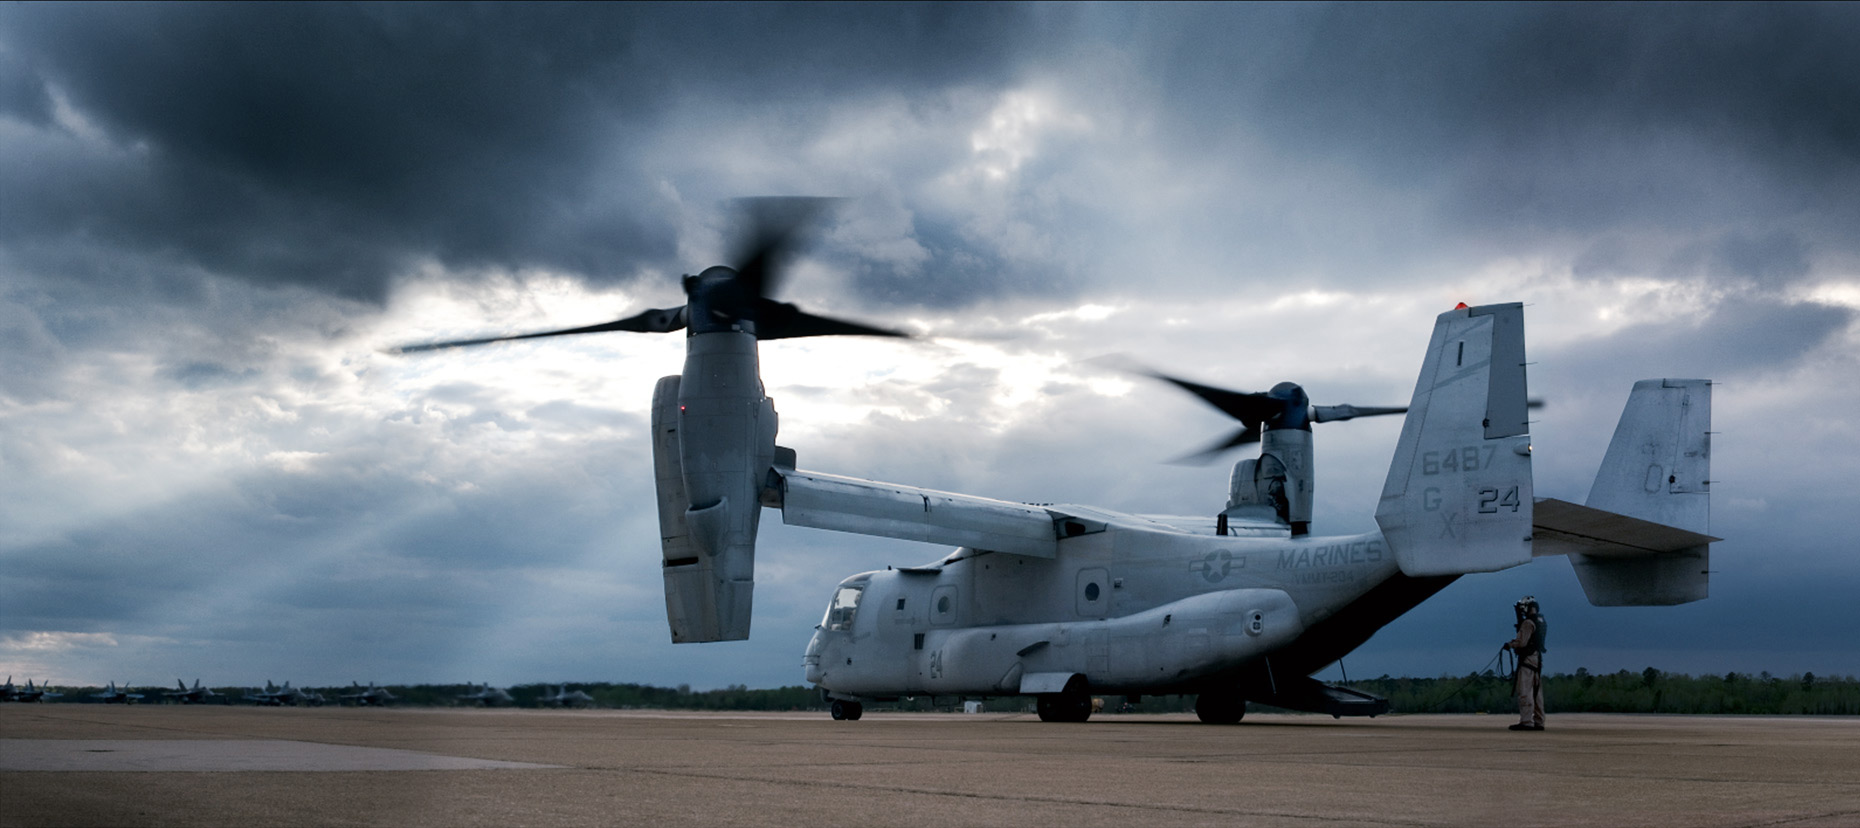 Scharetg_USMC_V-22_Osprey .  DC photographer , SF photograper  - washington dc commercial photographer,